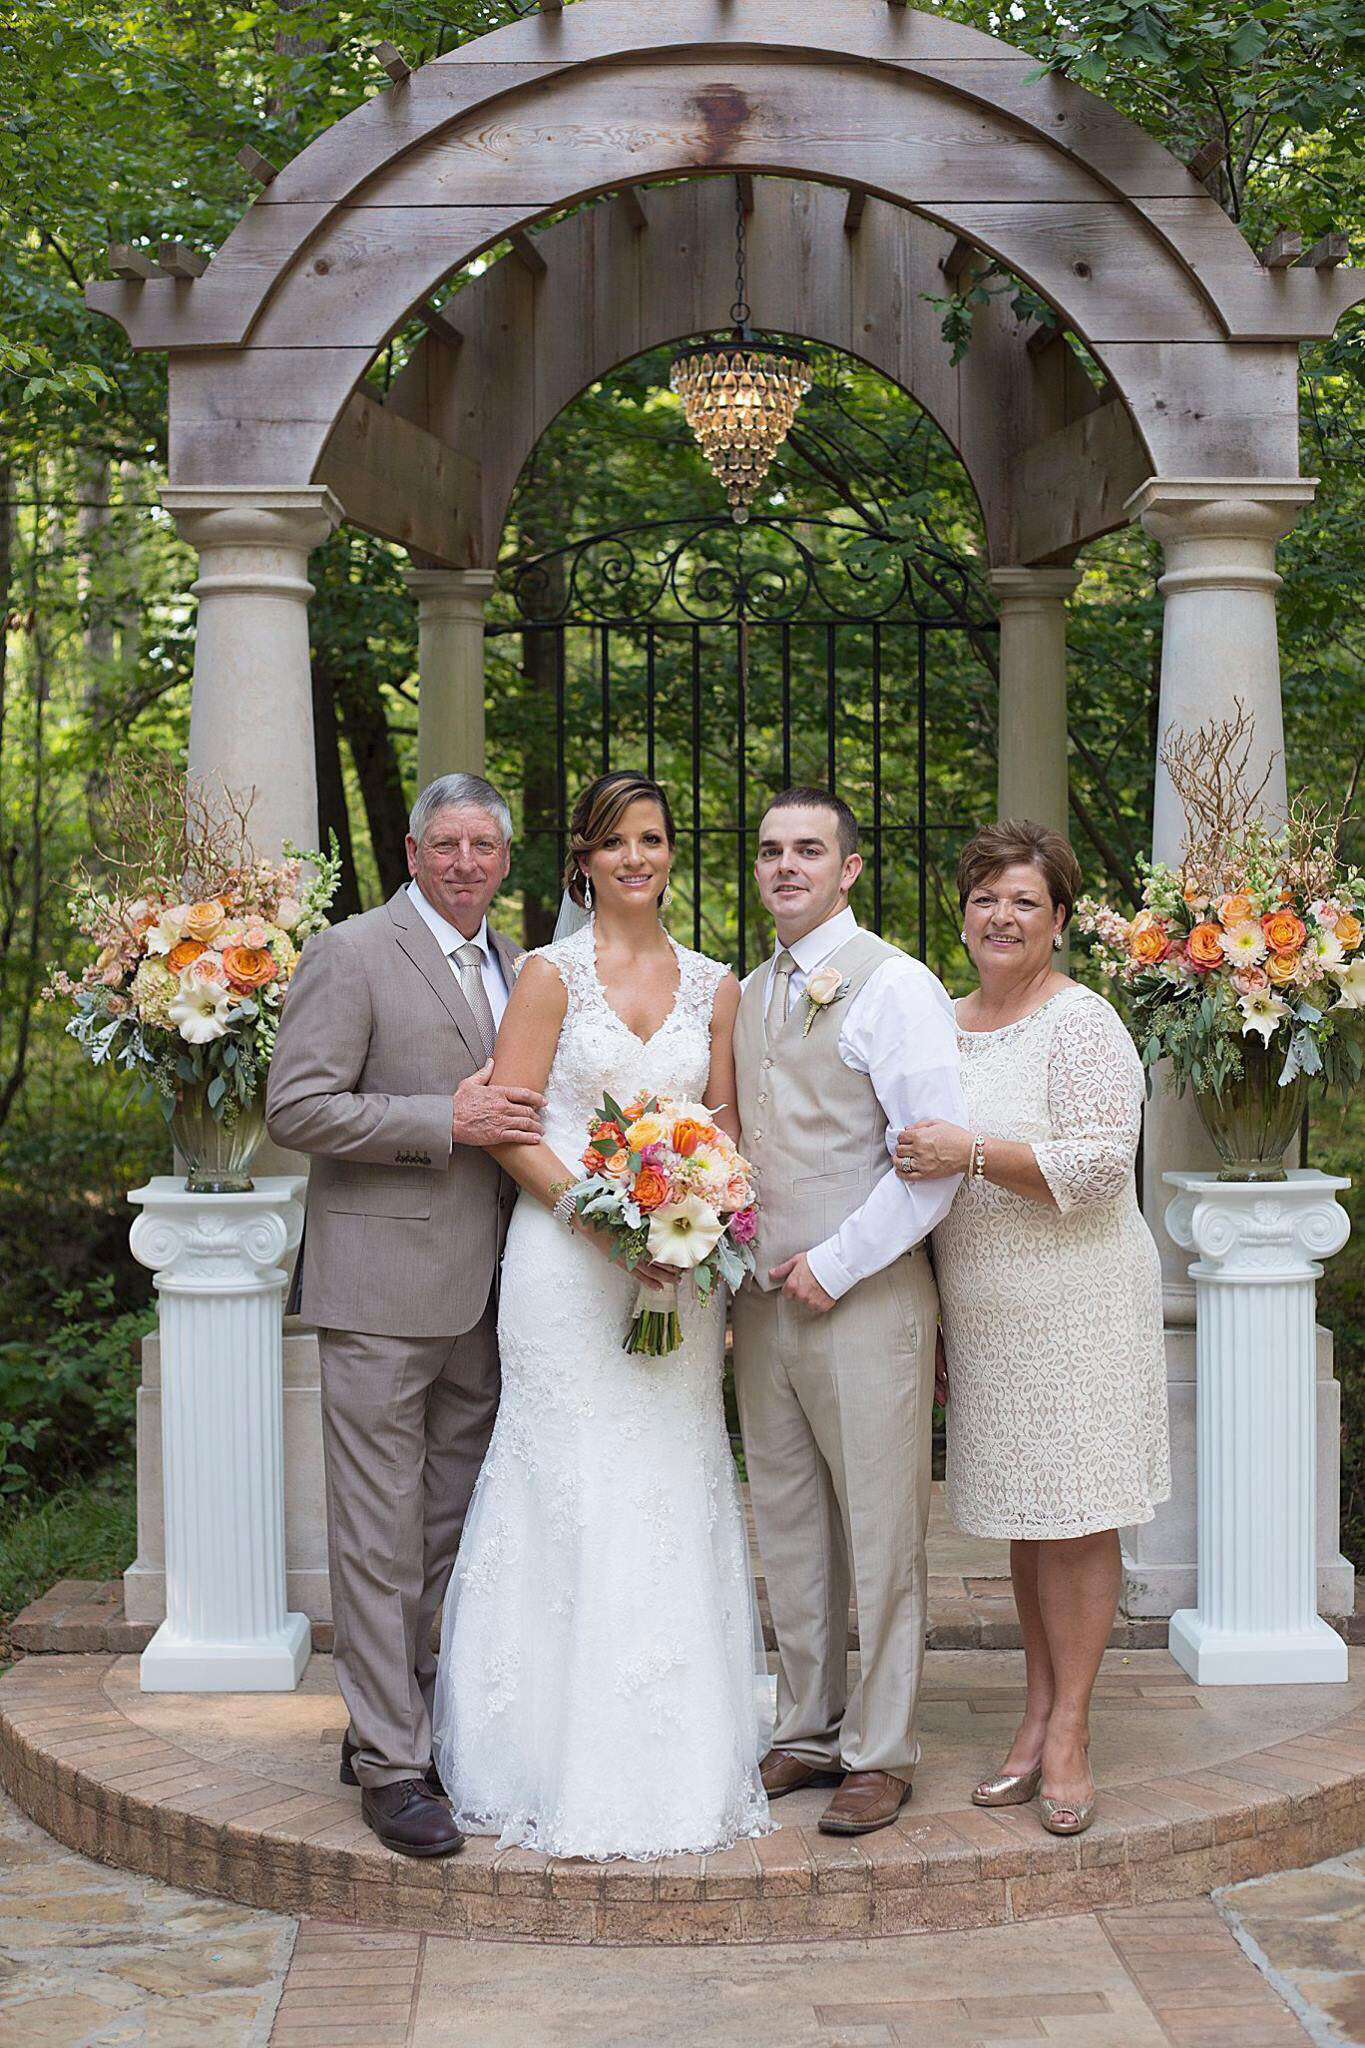 ^On their wedding day, August 29, 2015, Bubba and Jana took a minute to have this photo taken with her parents, Jimmy and Linda Parker. (Photo by Megan Garrison)